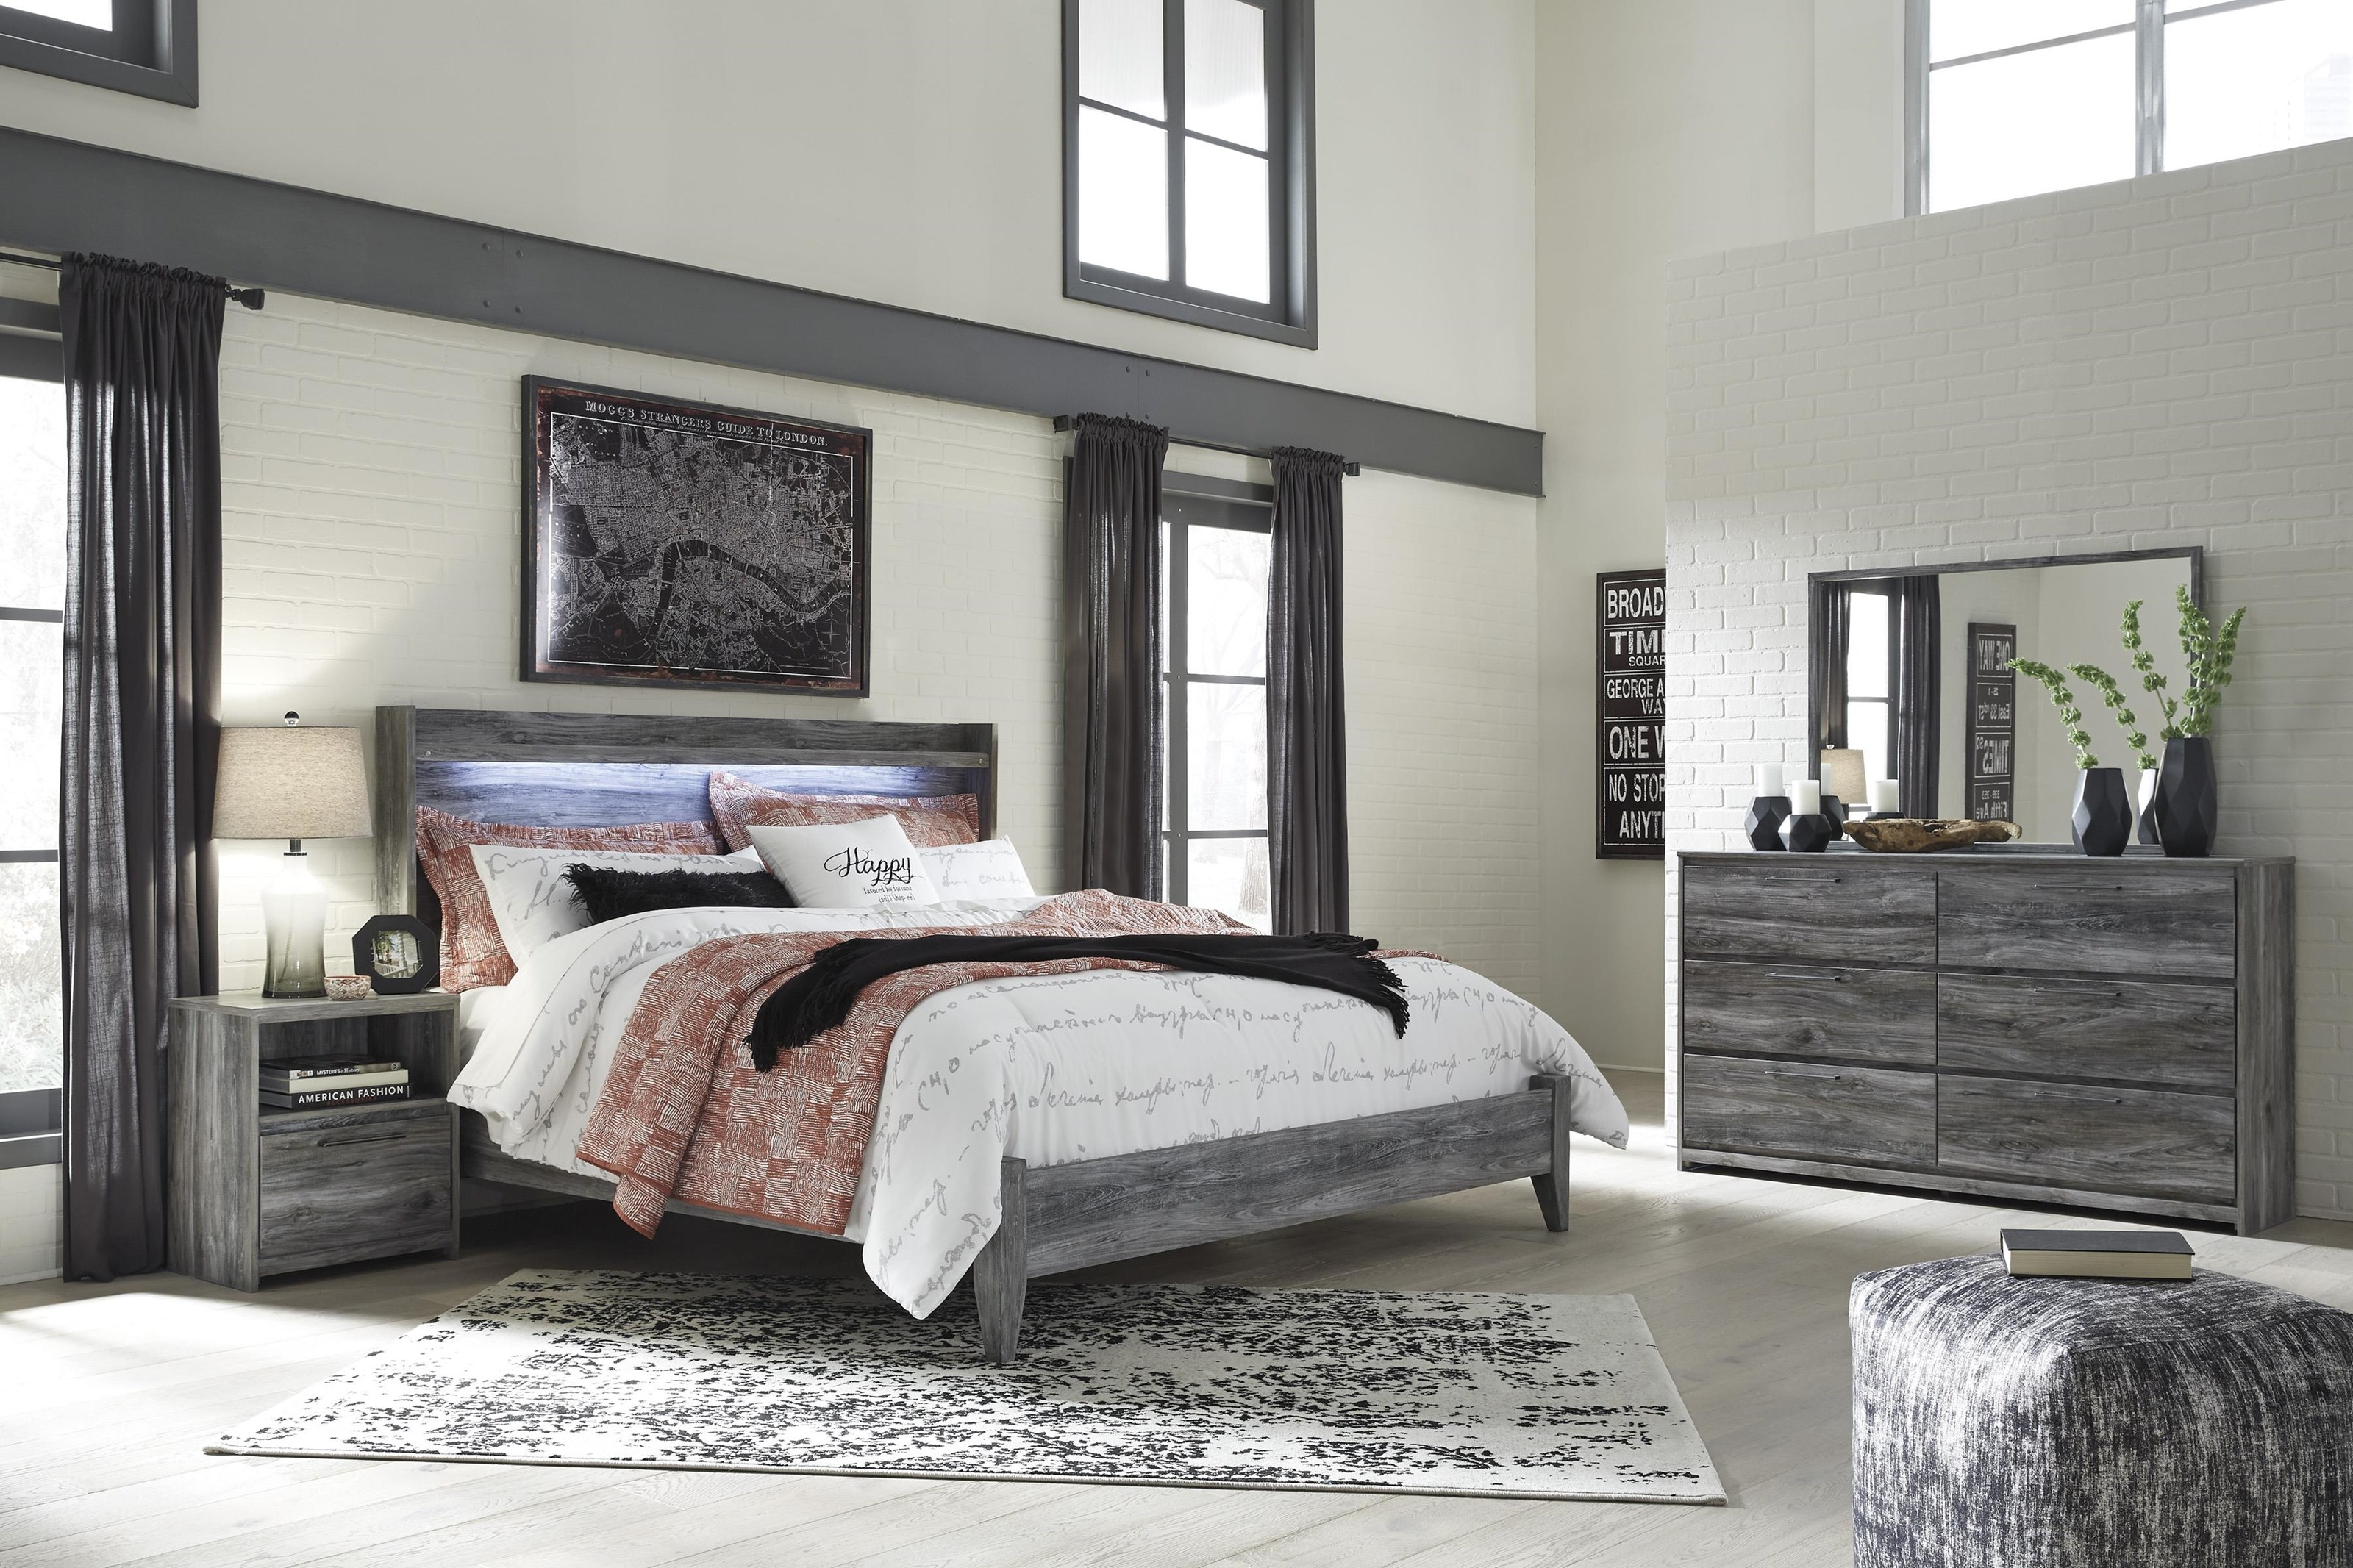 Baystorm 5PC Queen Bedroom Group by Signature Design by Ashley at Value City Furniture